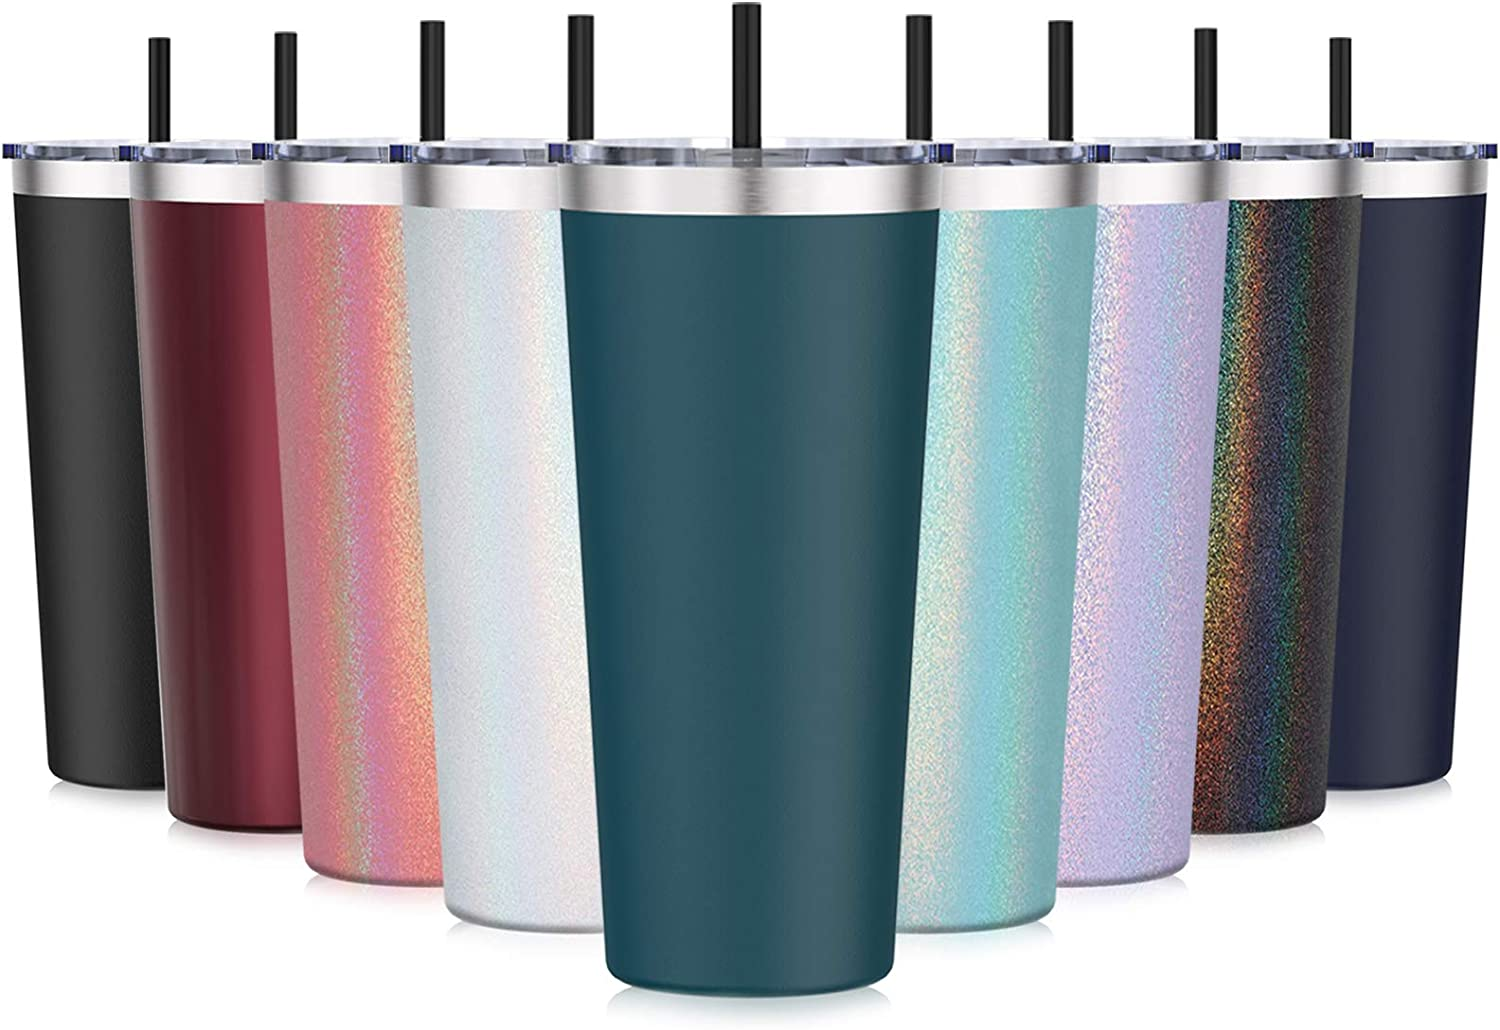 Travel Tumbler with Lid and Straws, Aikico Insulated Stainless Steel Travel Mug Coffee Cup for Ice Drinks & Hot Beverage, Double Wall 22 oz Powder Coated Coffee Tumbler for Home and Office, Dark Green